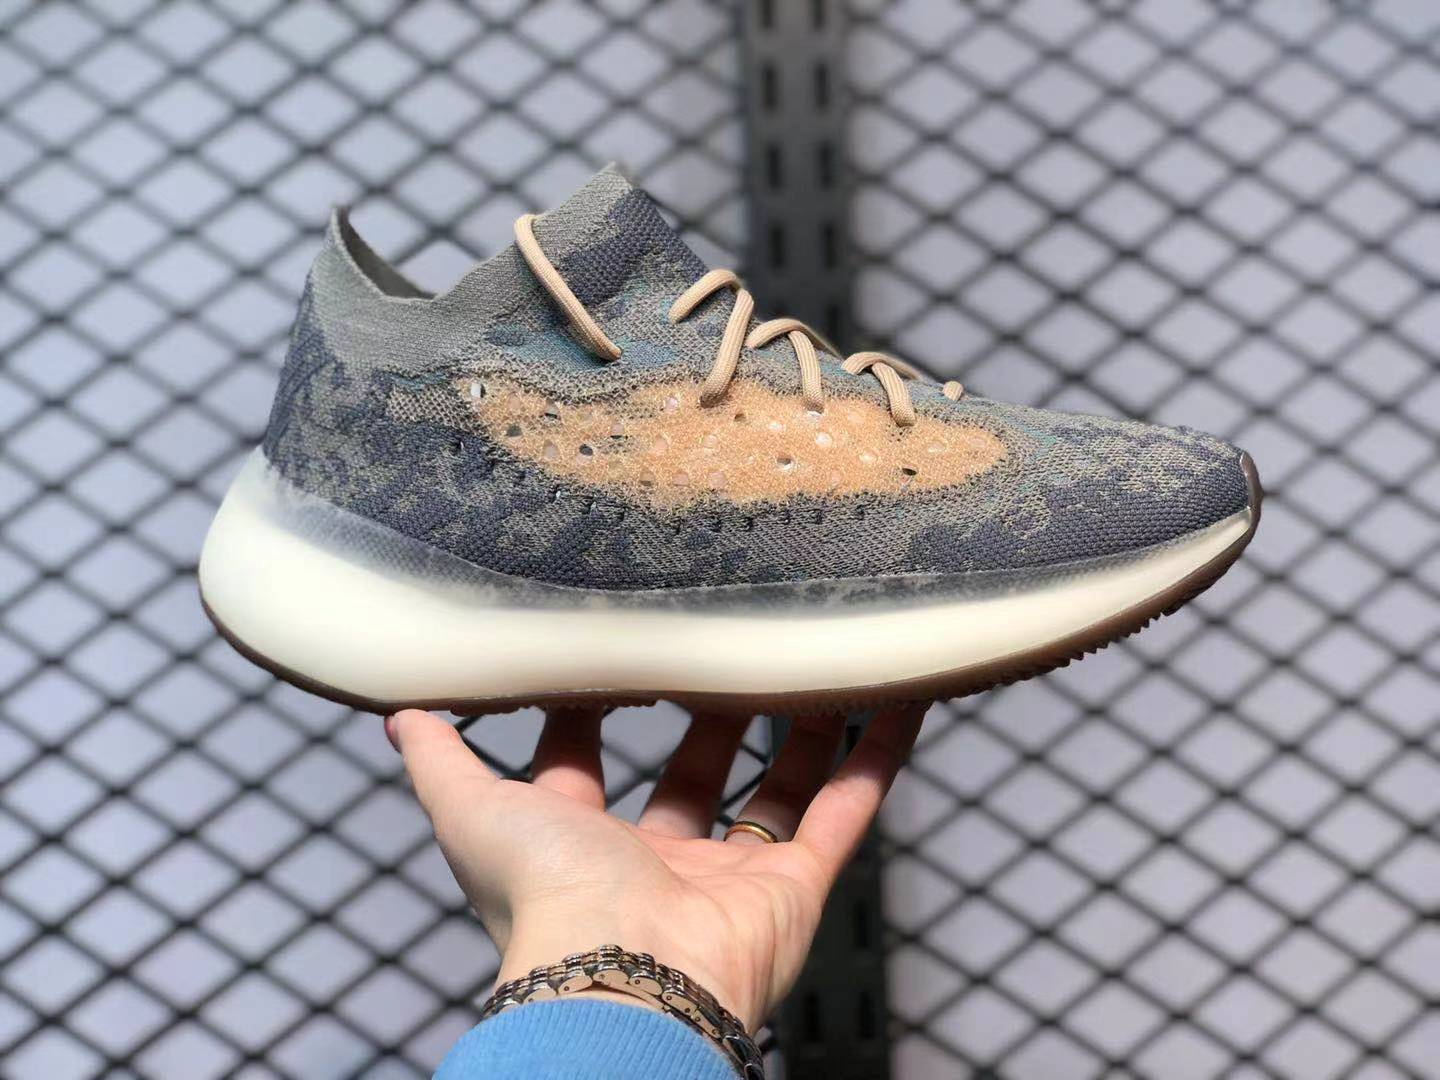 adidas Yeezy Boost 380 Mist FX9764 To Buy